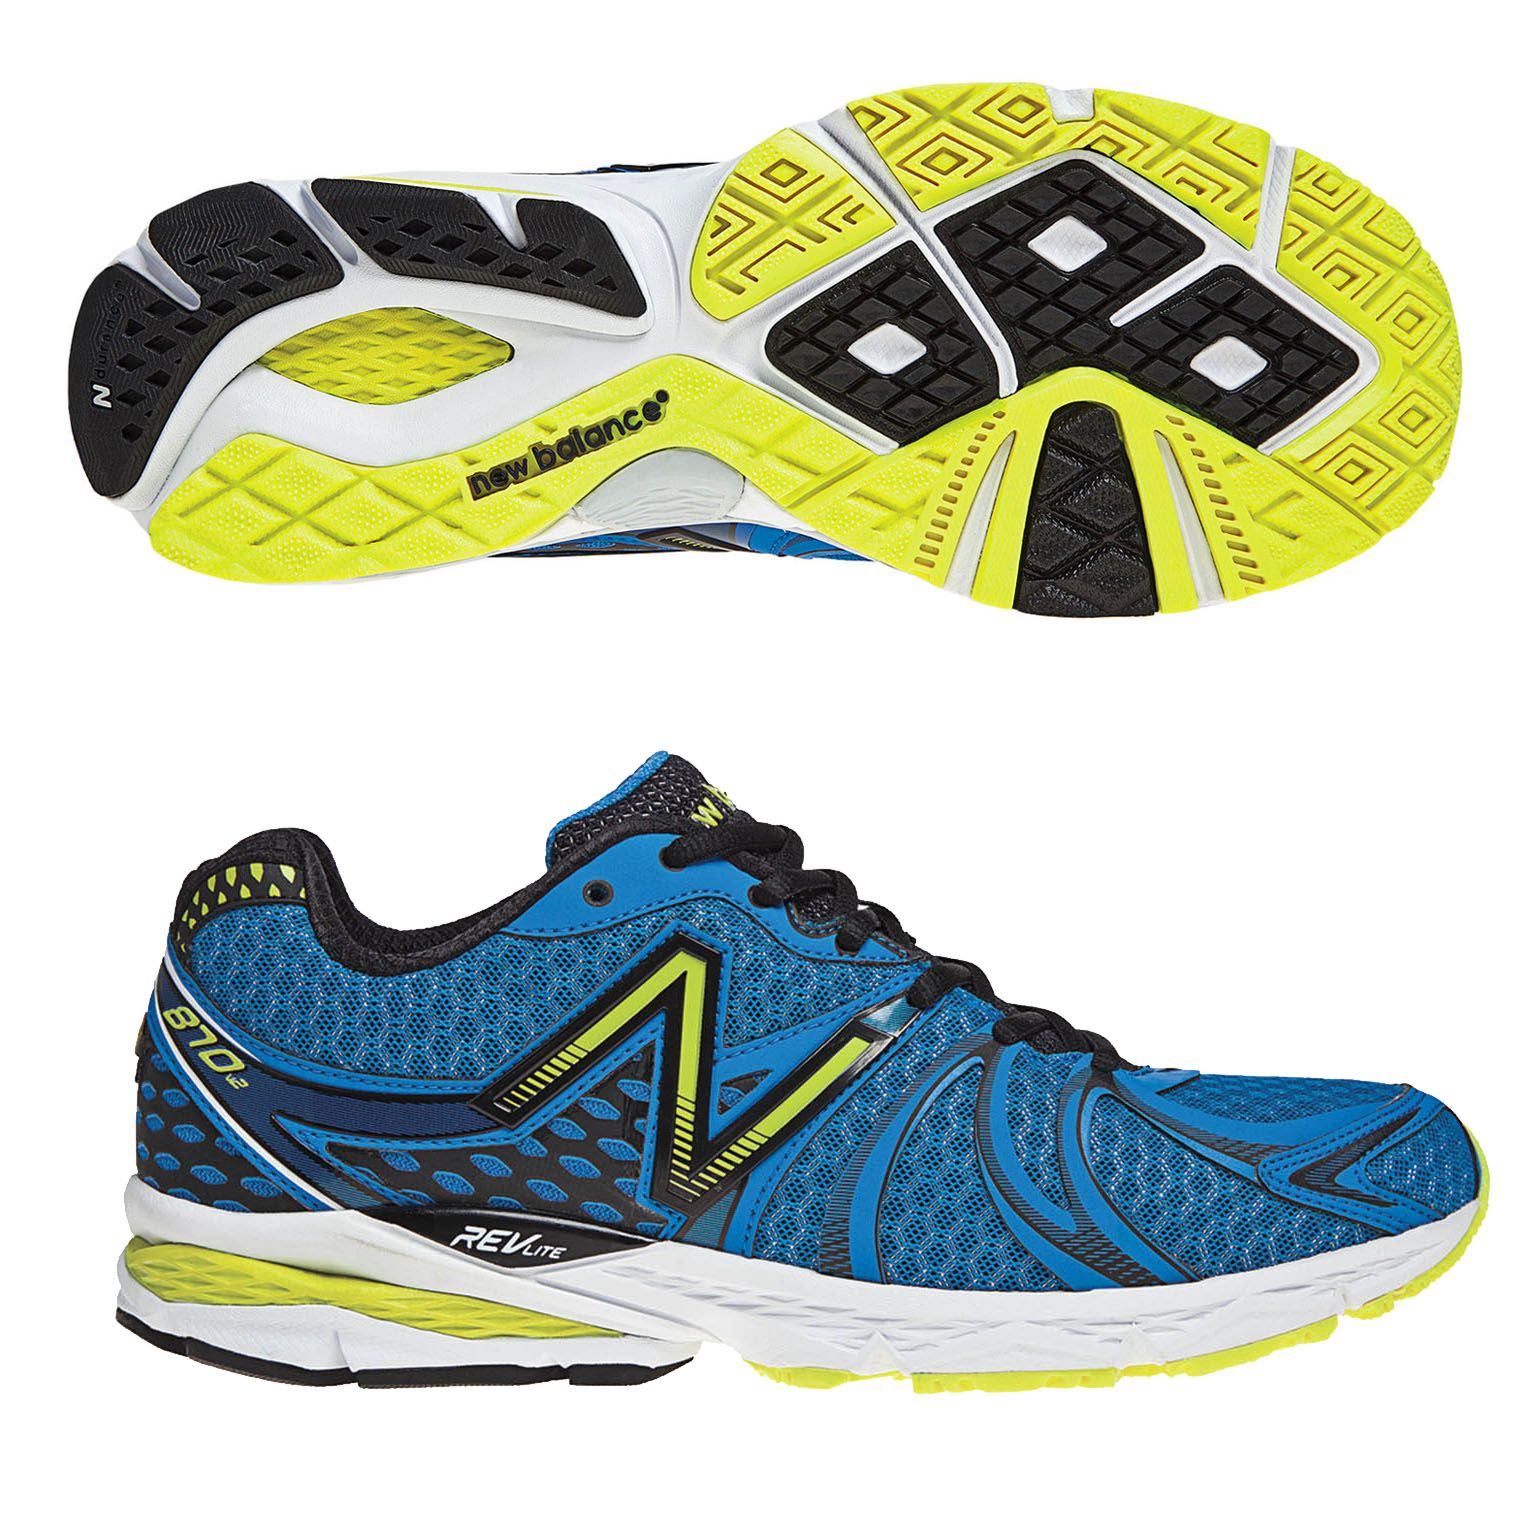 New Balance Mens V Stability Running Shoes